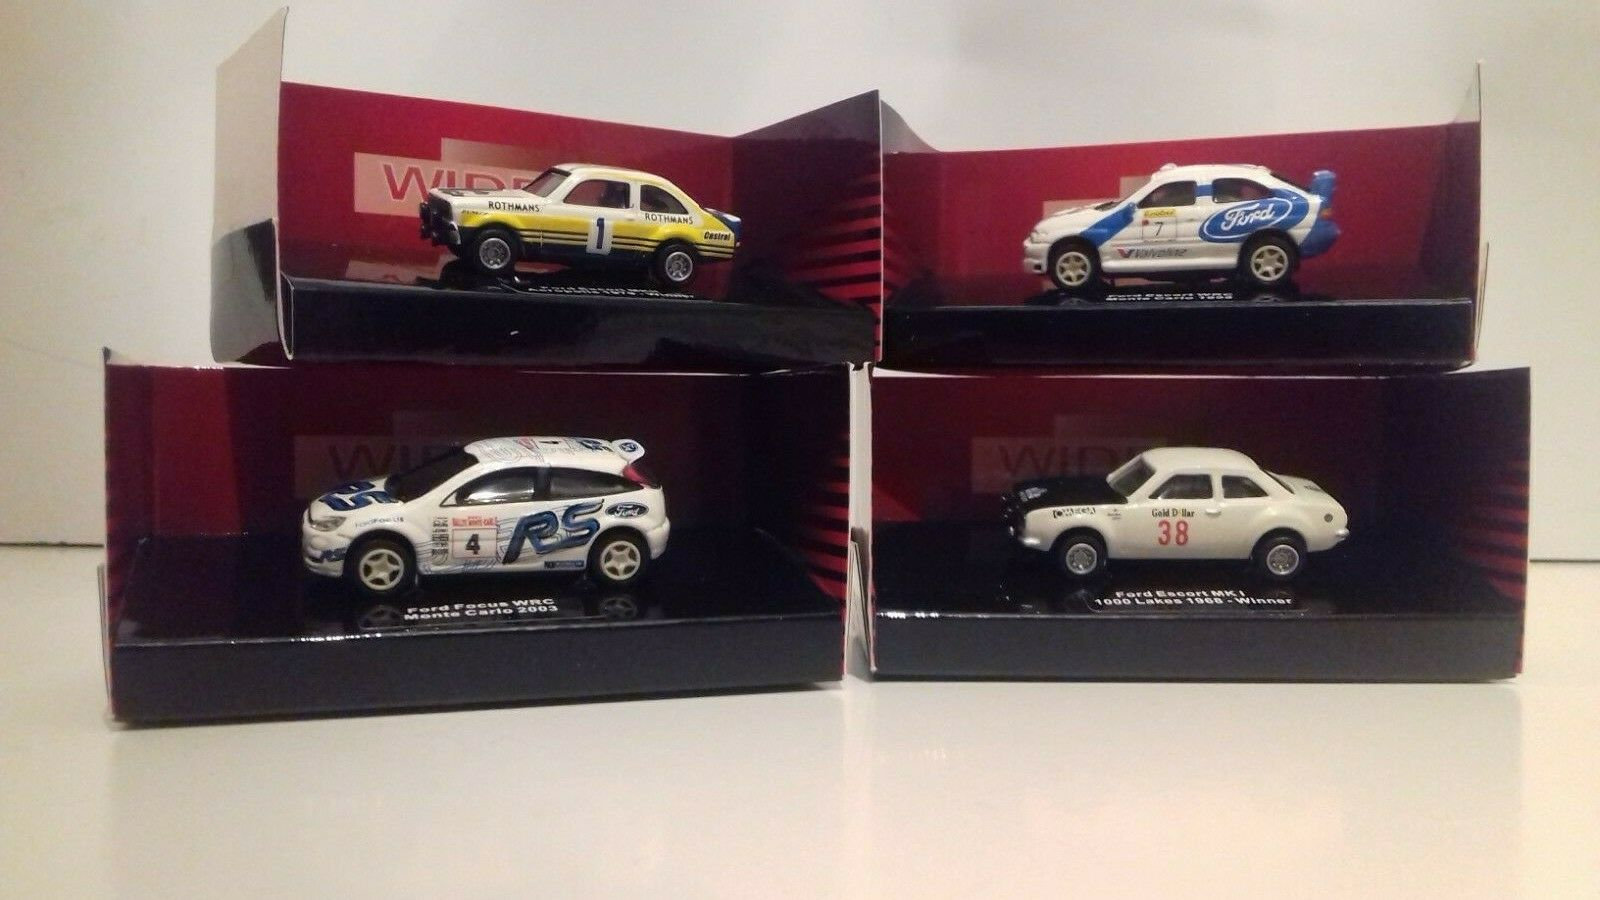 Ford Escort Focus Rally Cars 1 87 Scale.WIDEA Die- Cast